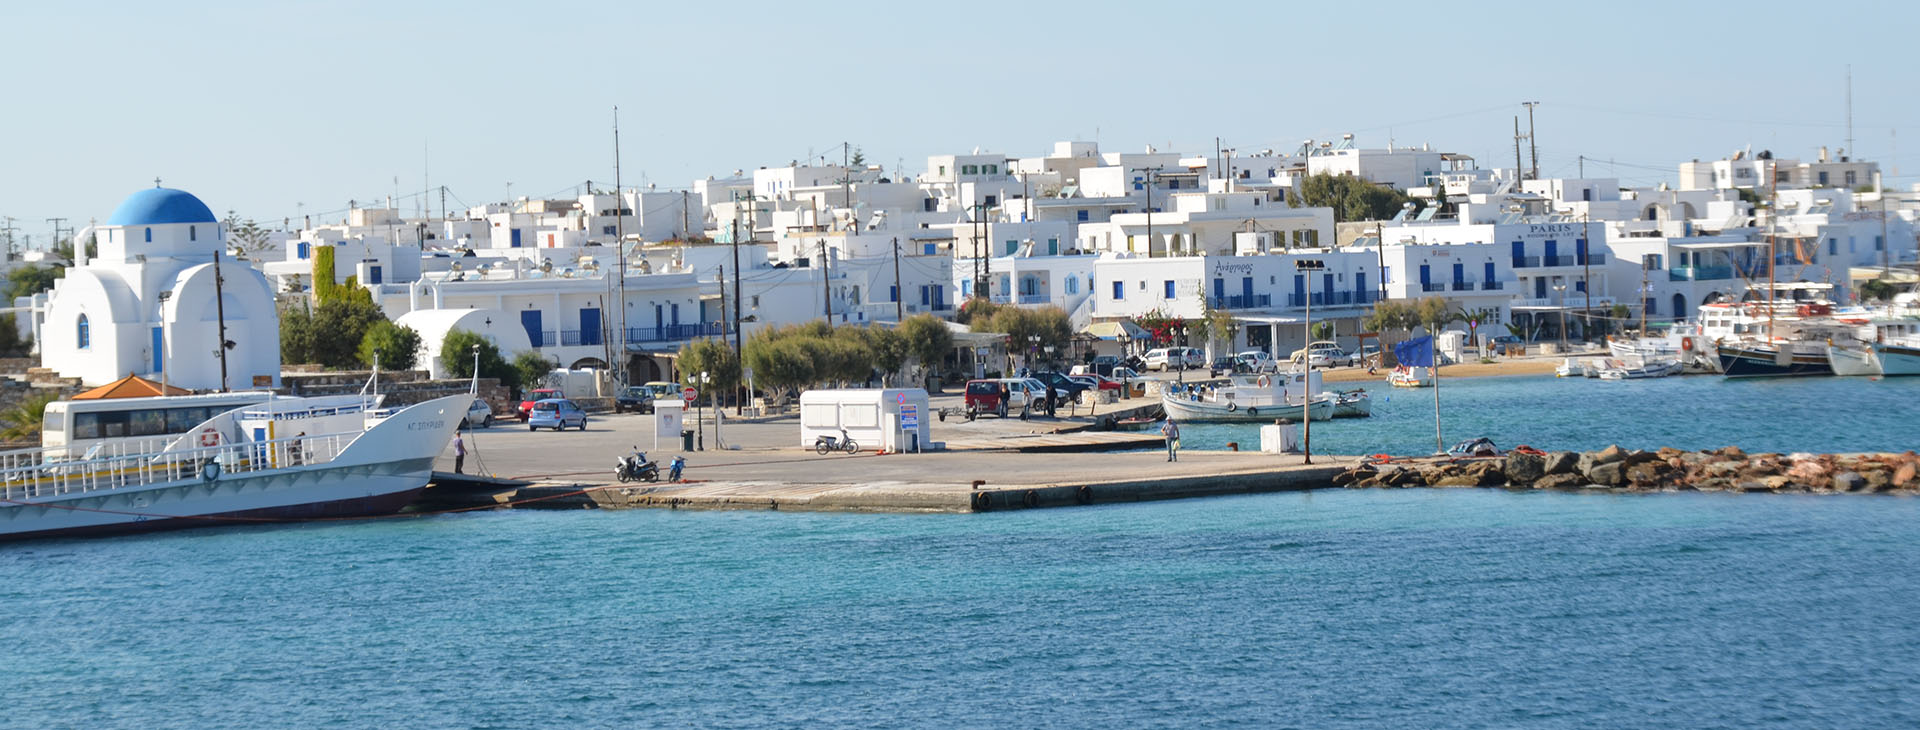 Port of Antiparos island